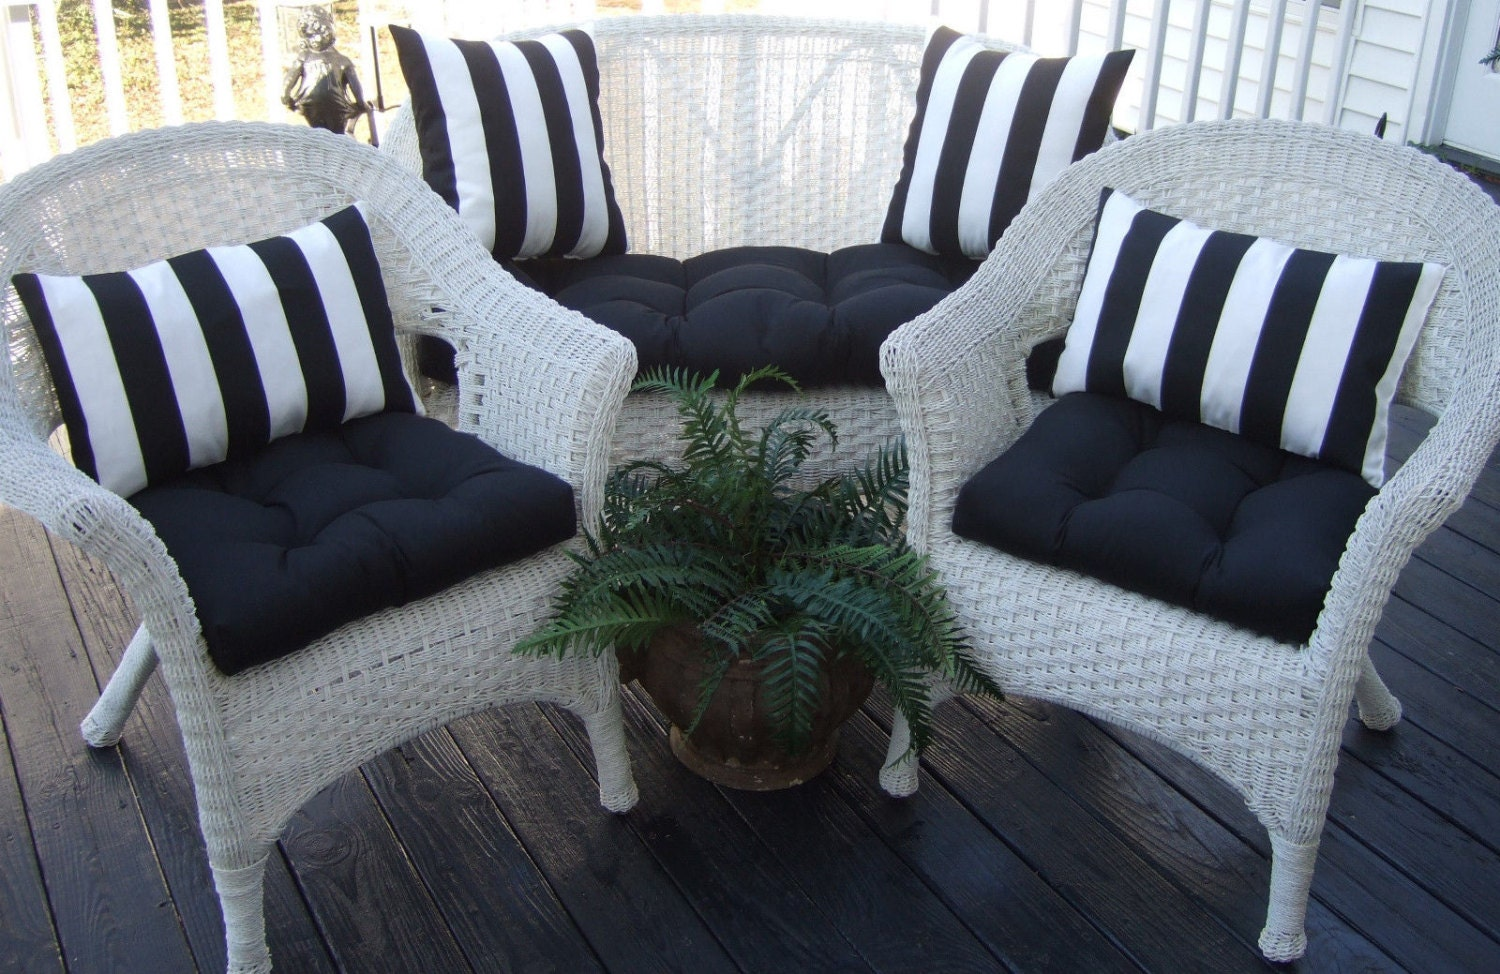 Indoor Outdoor Wicker Cushion And Pillow 7 Pc Set Solid